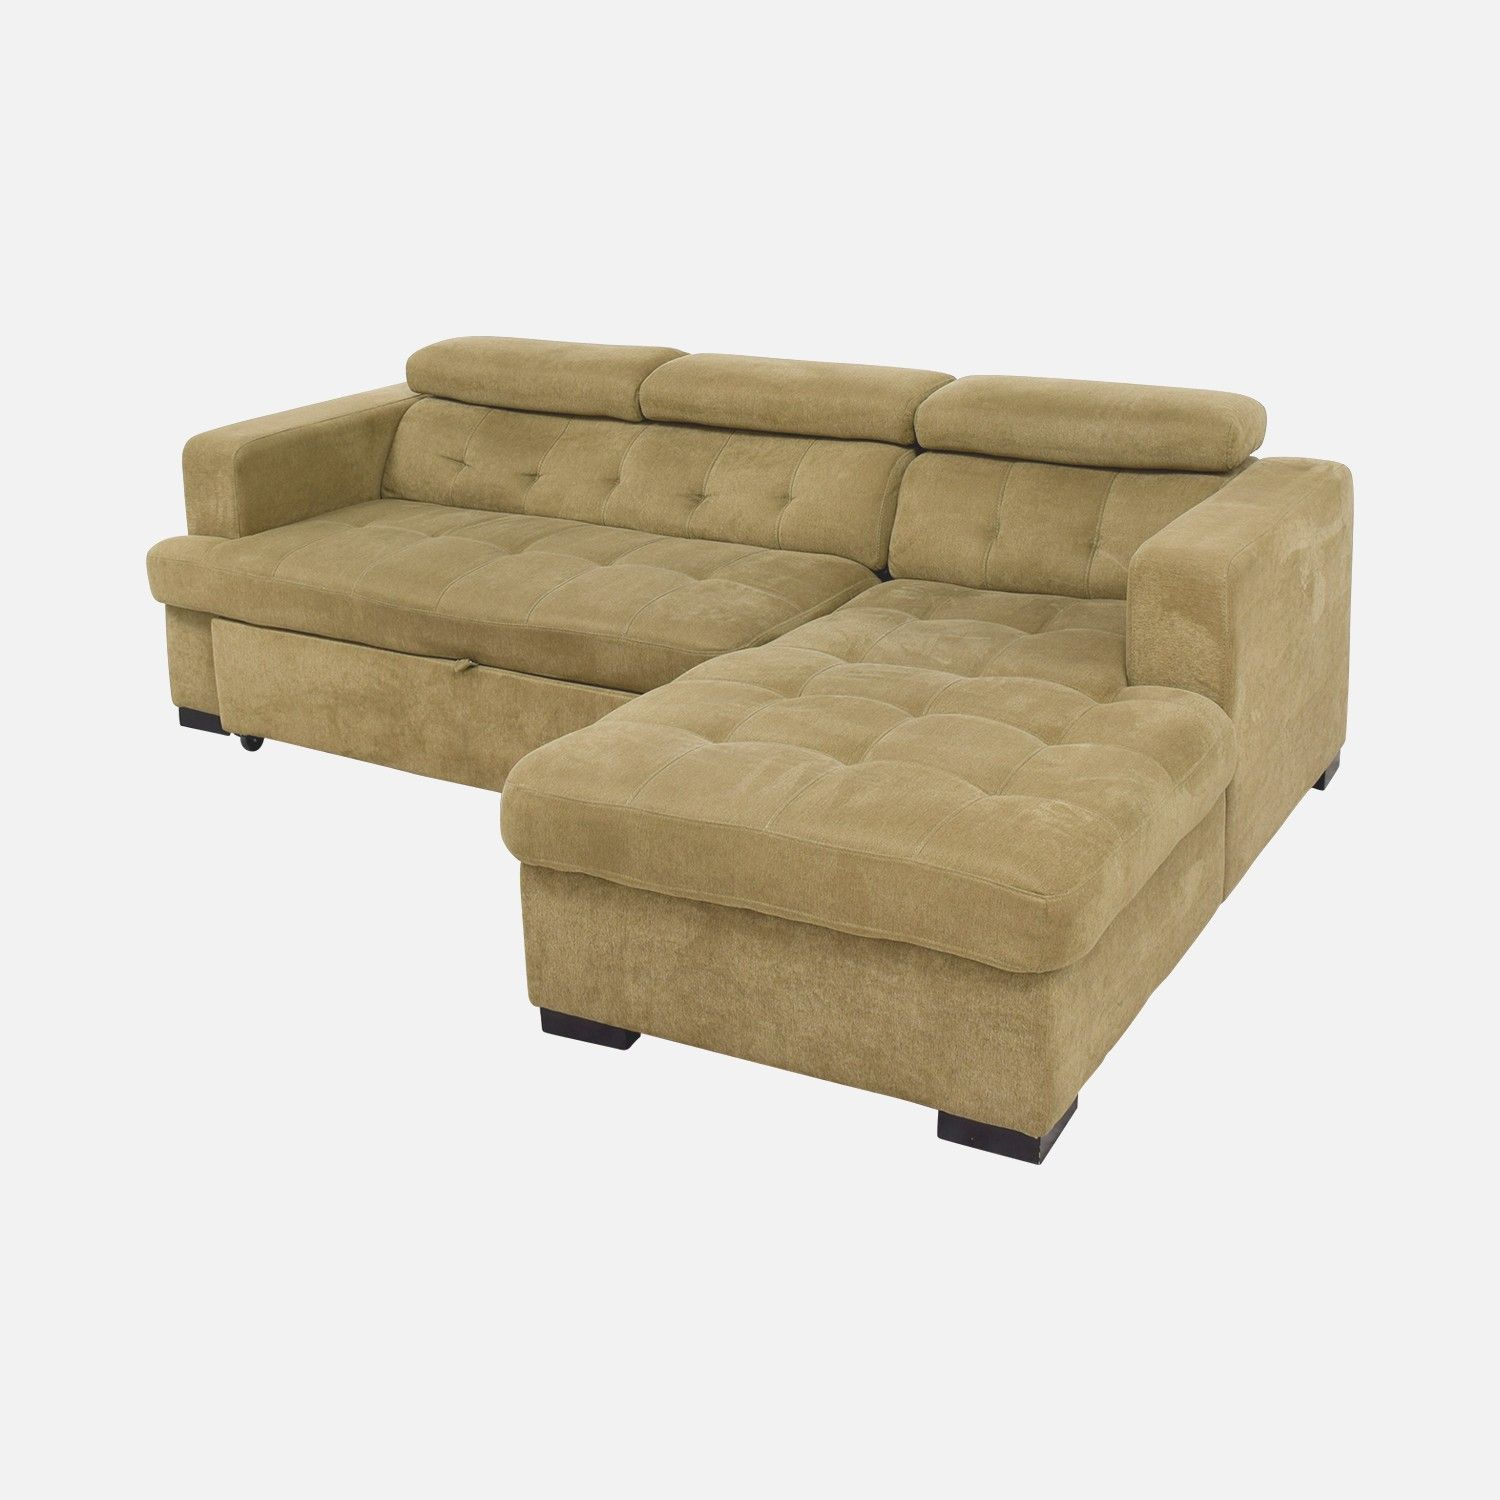 Bobs Furniture Sleeper Sofa Bob S Discount Furniture Sleeper Sofa